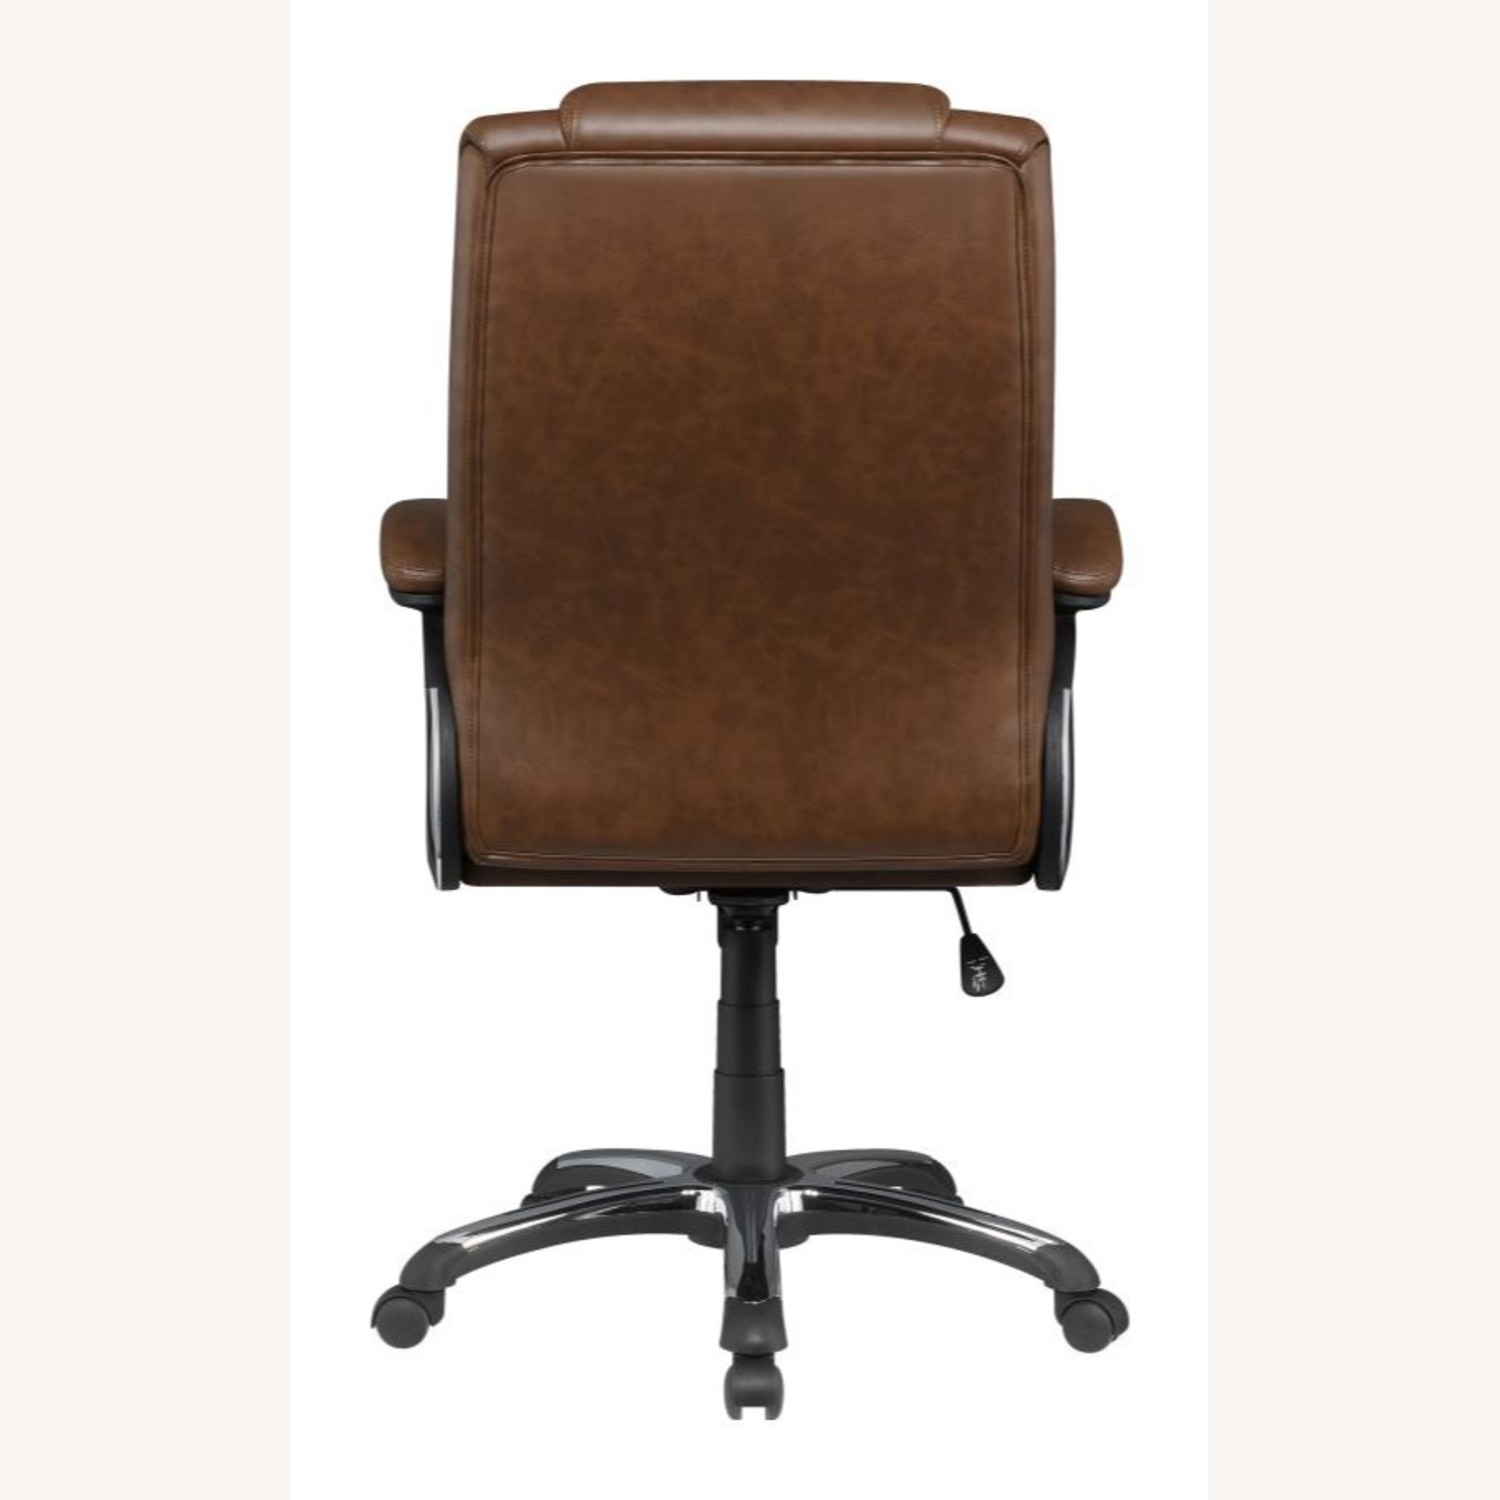 Office Chair In Tufted Brown Leatherette Finish - image-4